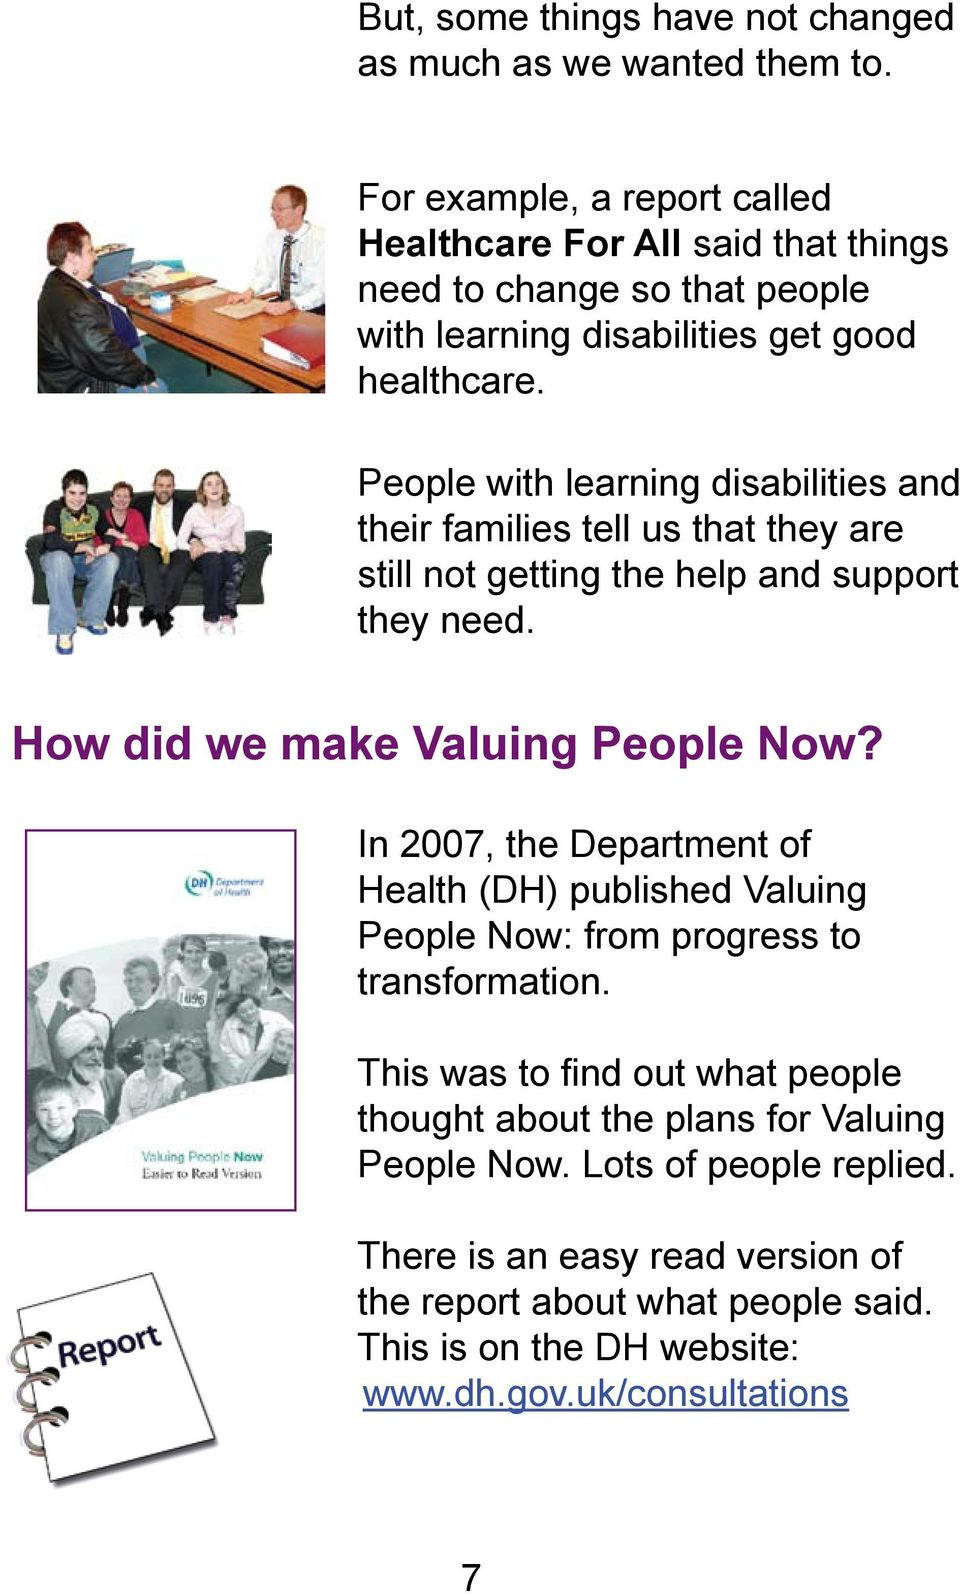 People with learning disabilities and their families tell us that they are still not getting the help and support they need. How did we make Valuing People Now?